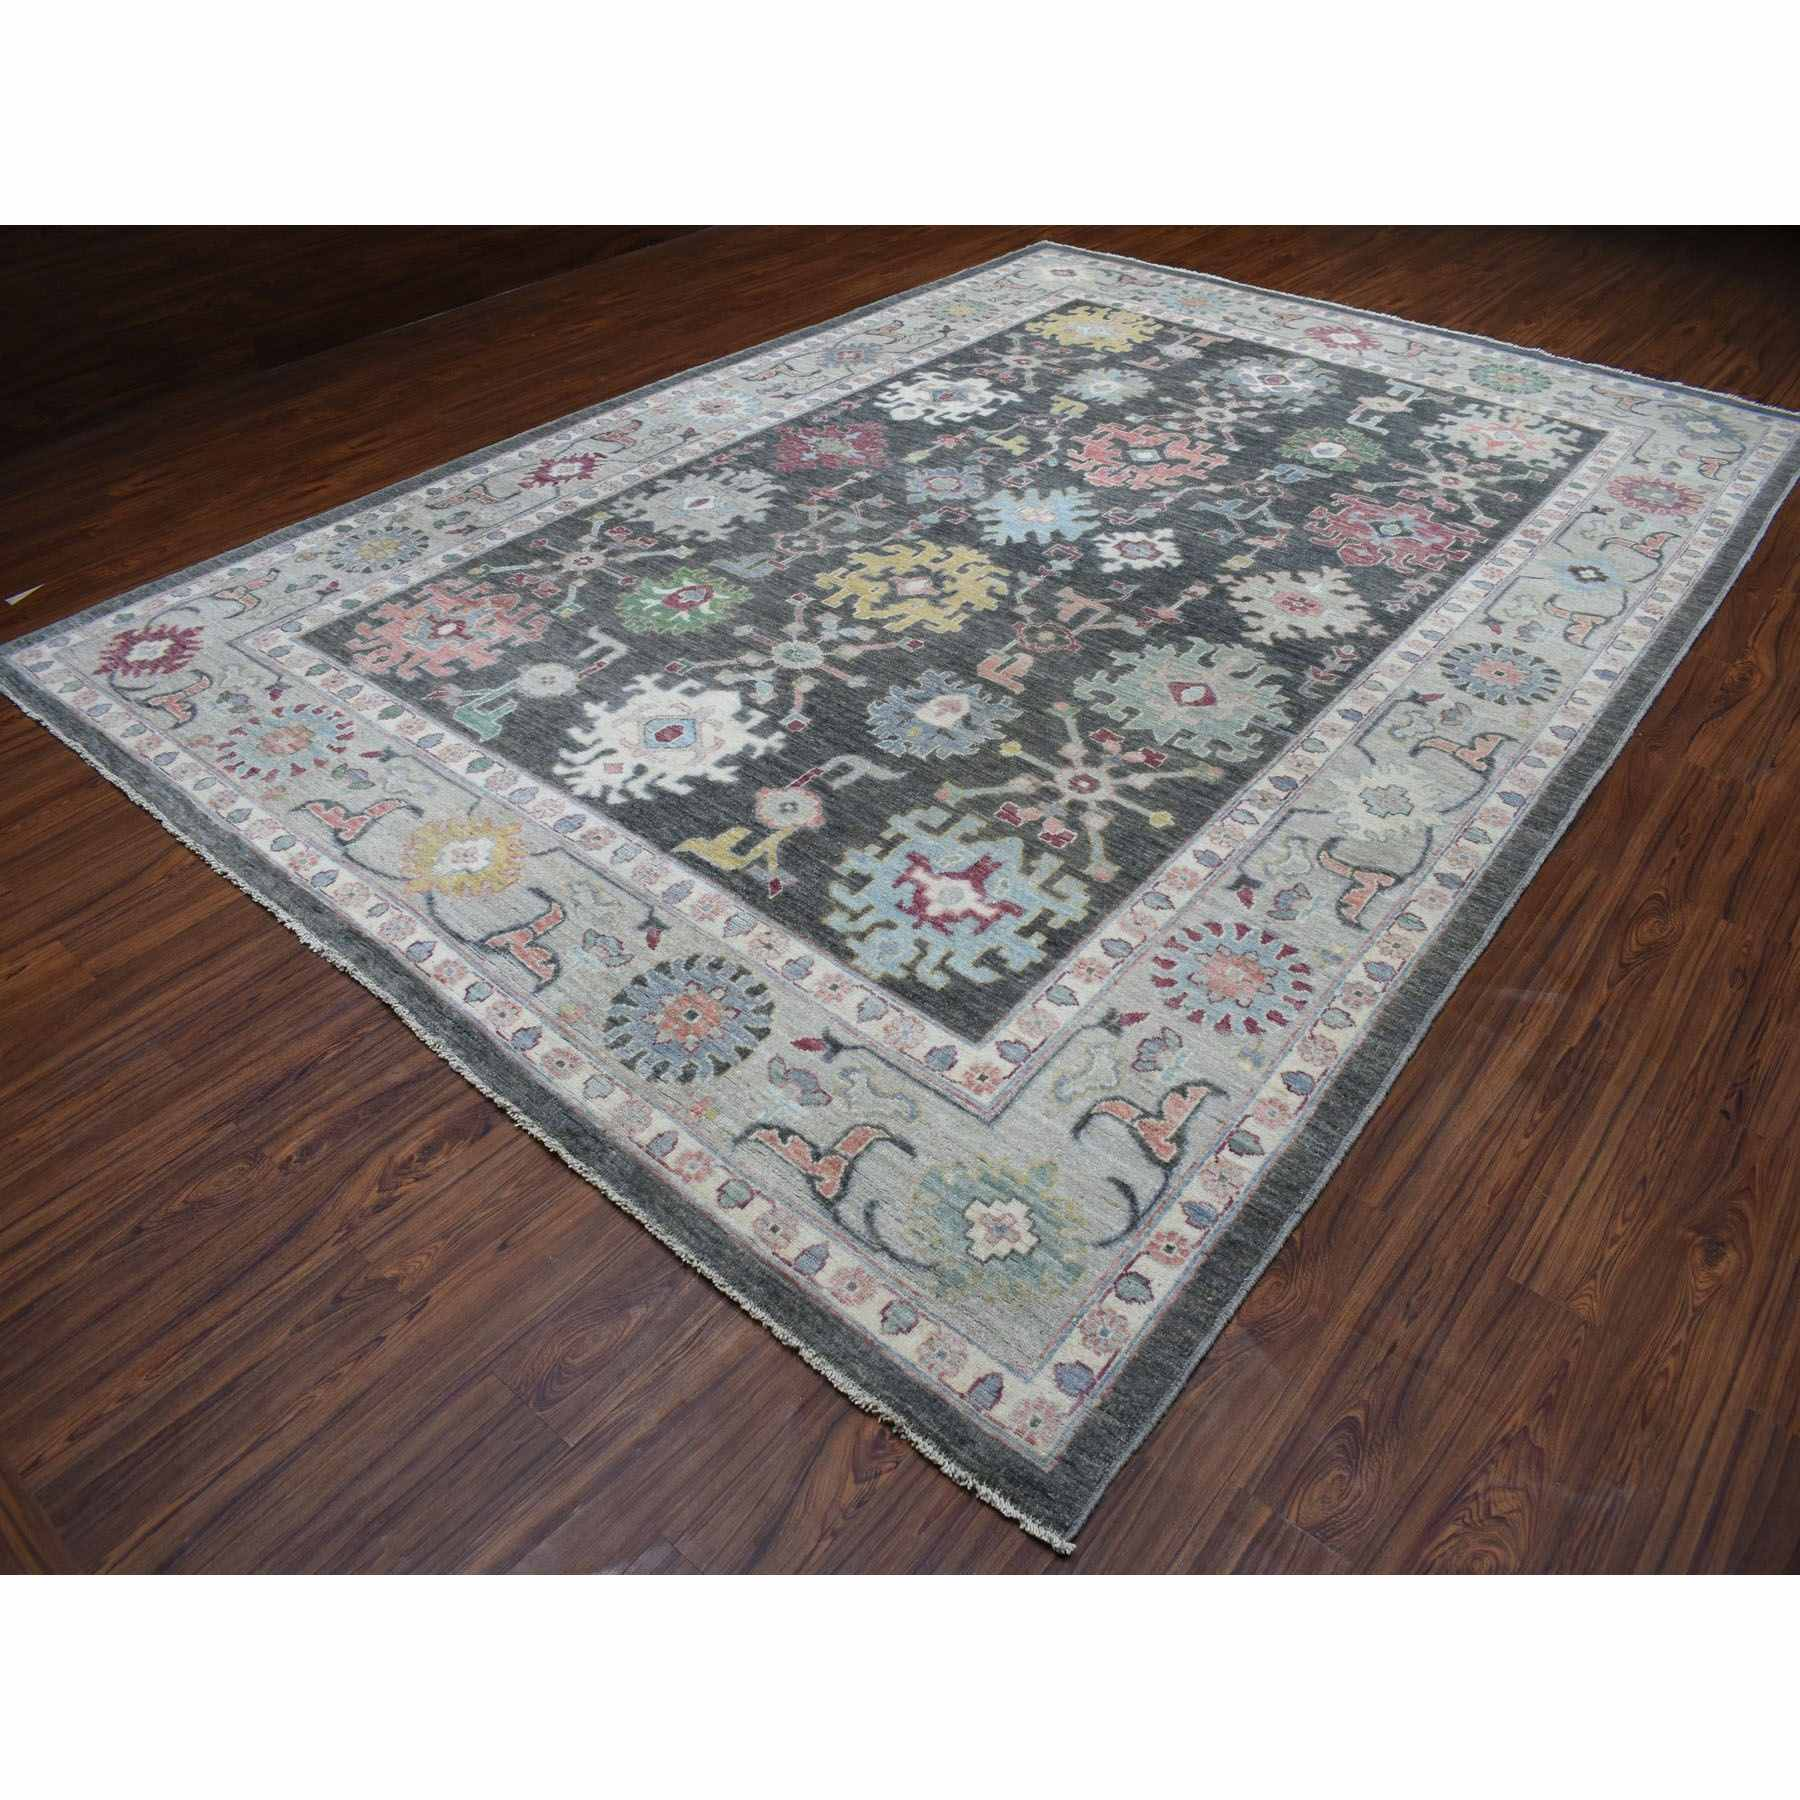 Oushak-And-Peshawar-Hand-Knotted-Rug-275560